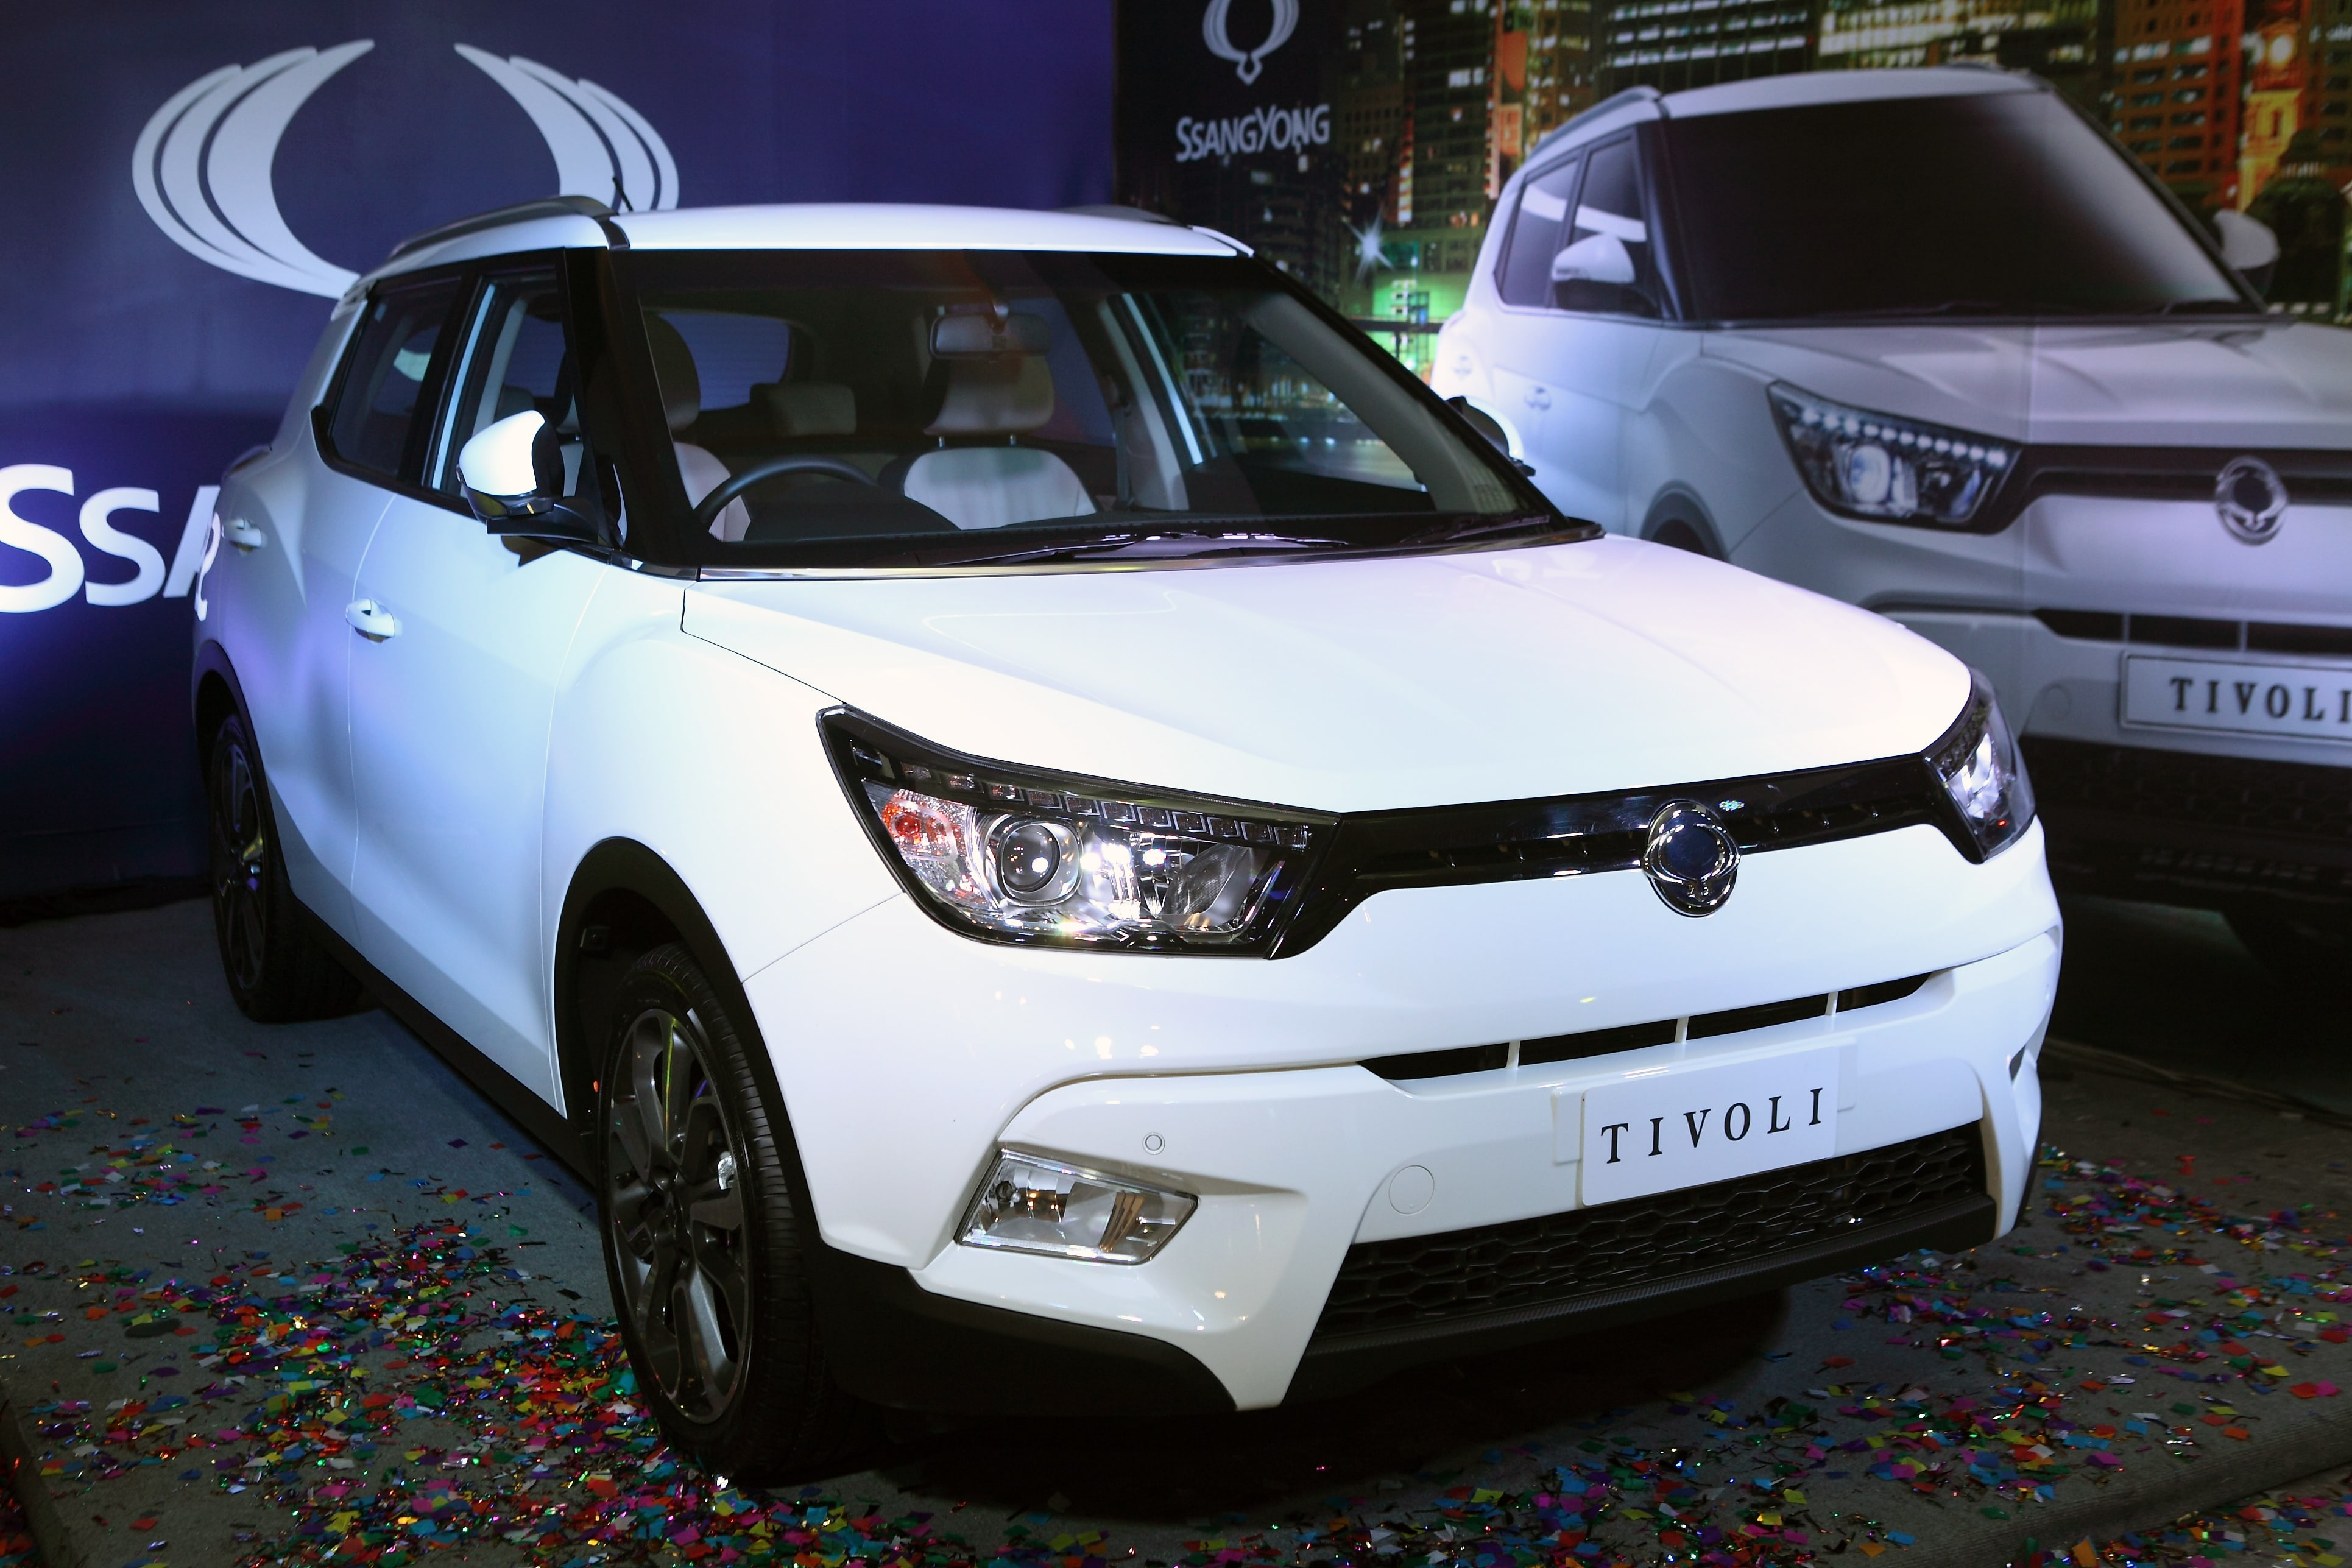 SsangYong Tivoli Full hd wallpapers